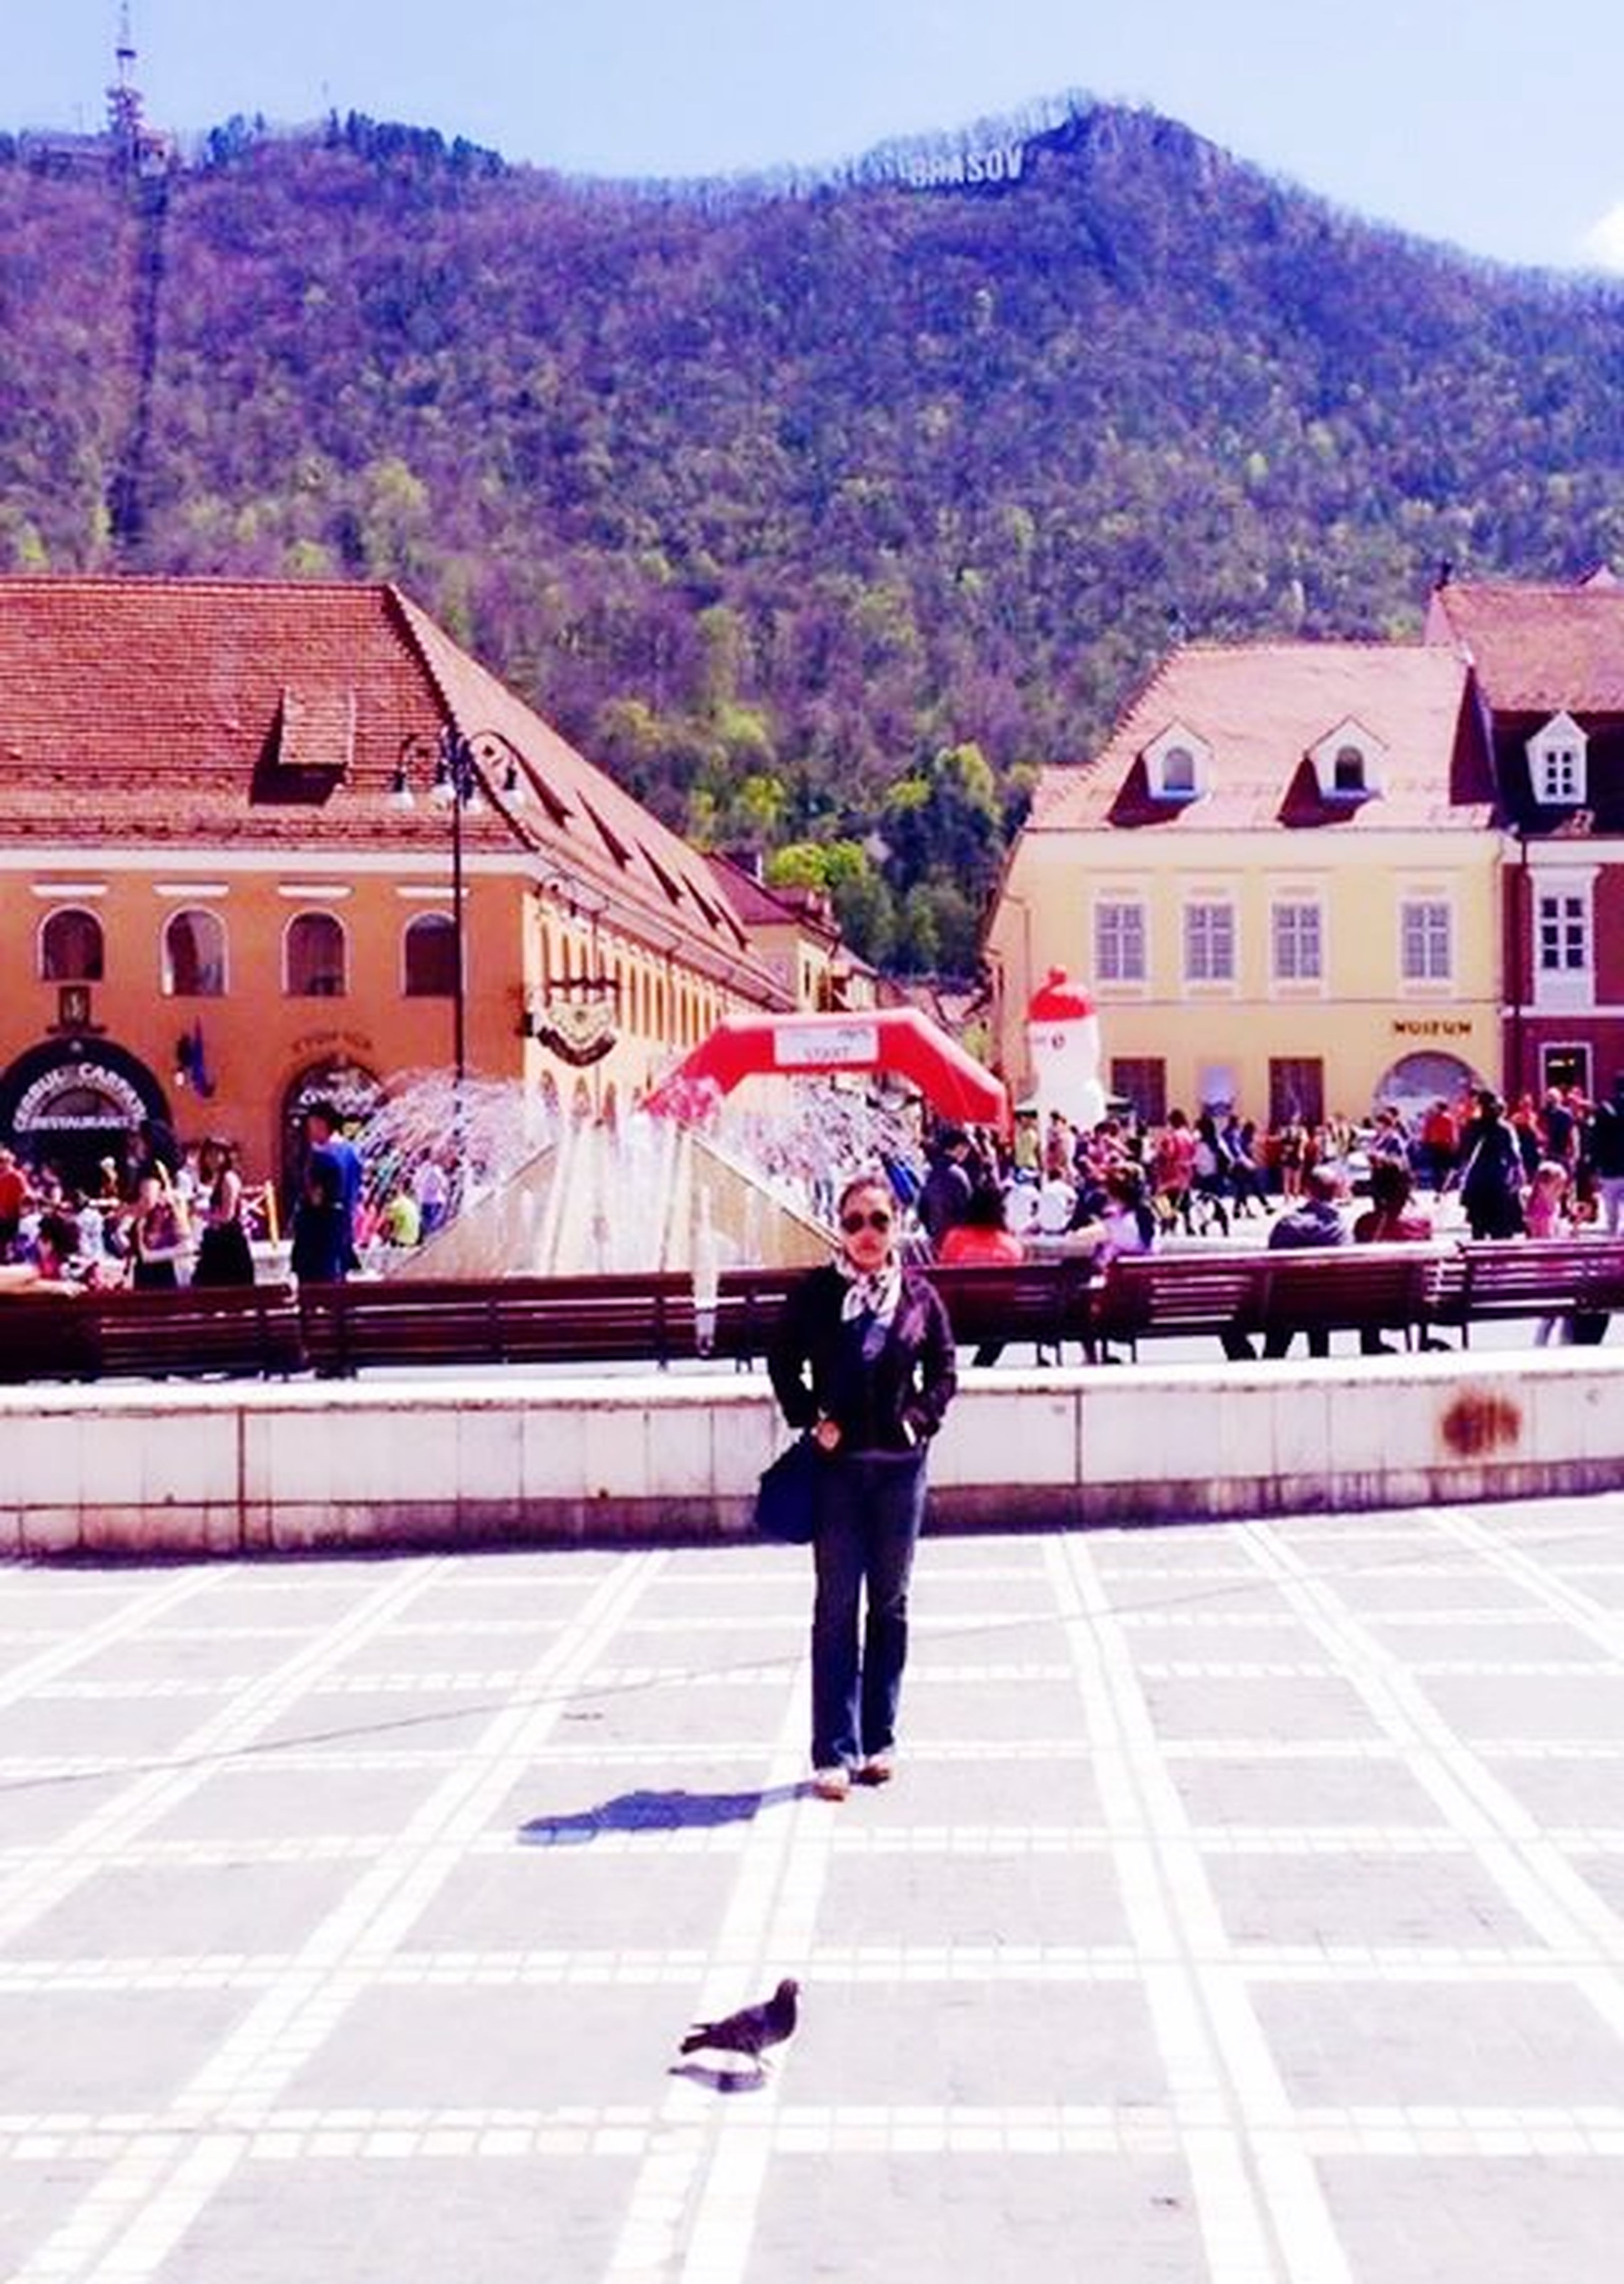 Brasov Council Square Margaret Gate Brasov Romania Solotraveler Spring -Summer 2015 Hello World Fashion&love&beauty Enjoying Life Travel Photography For My Own Photo Journal